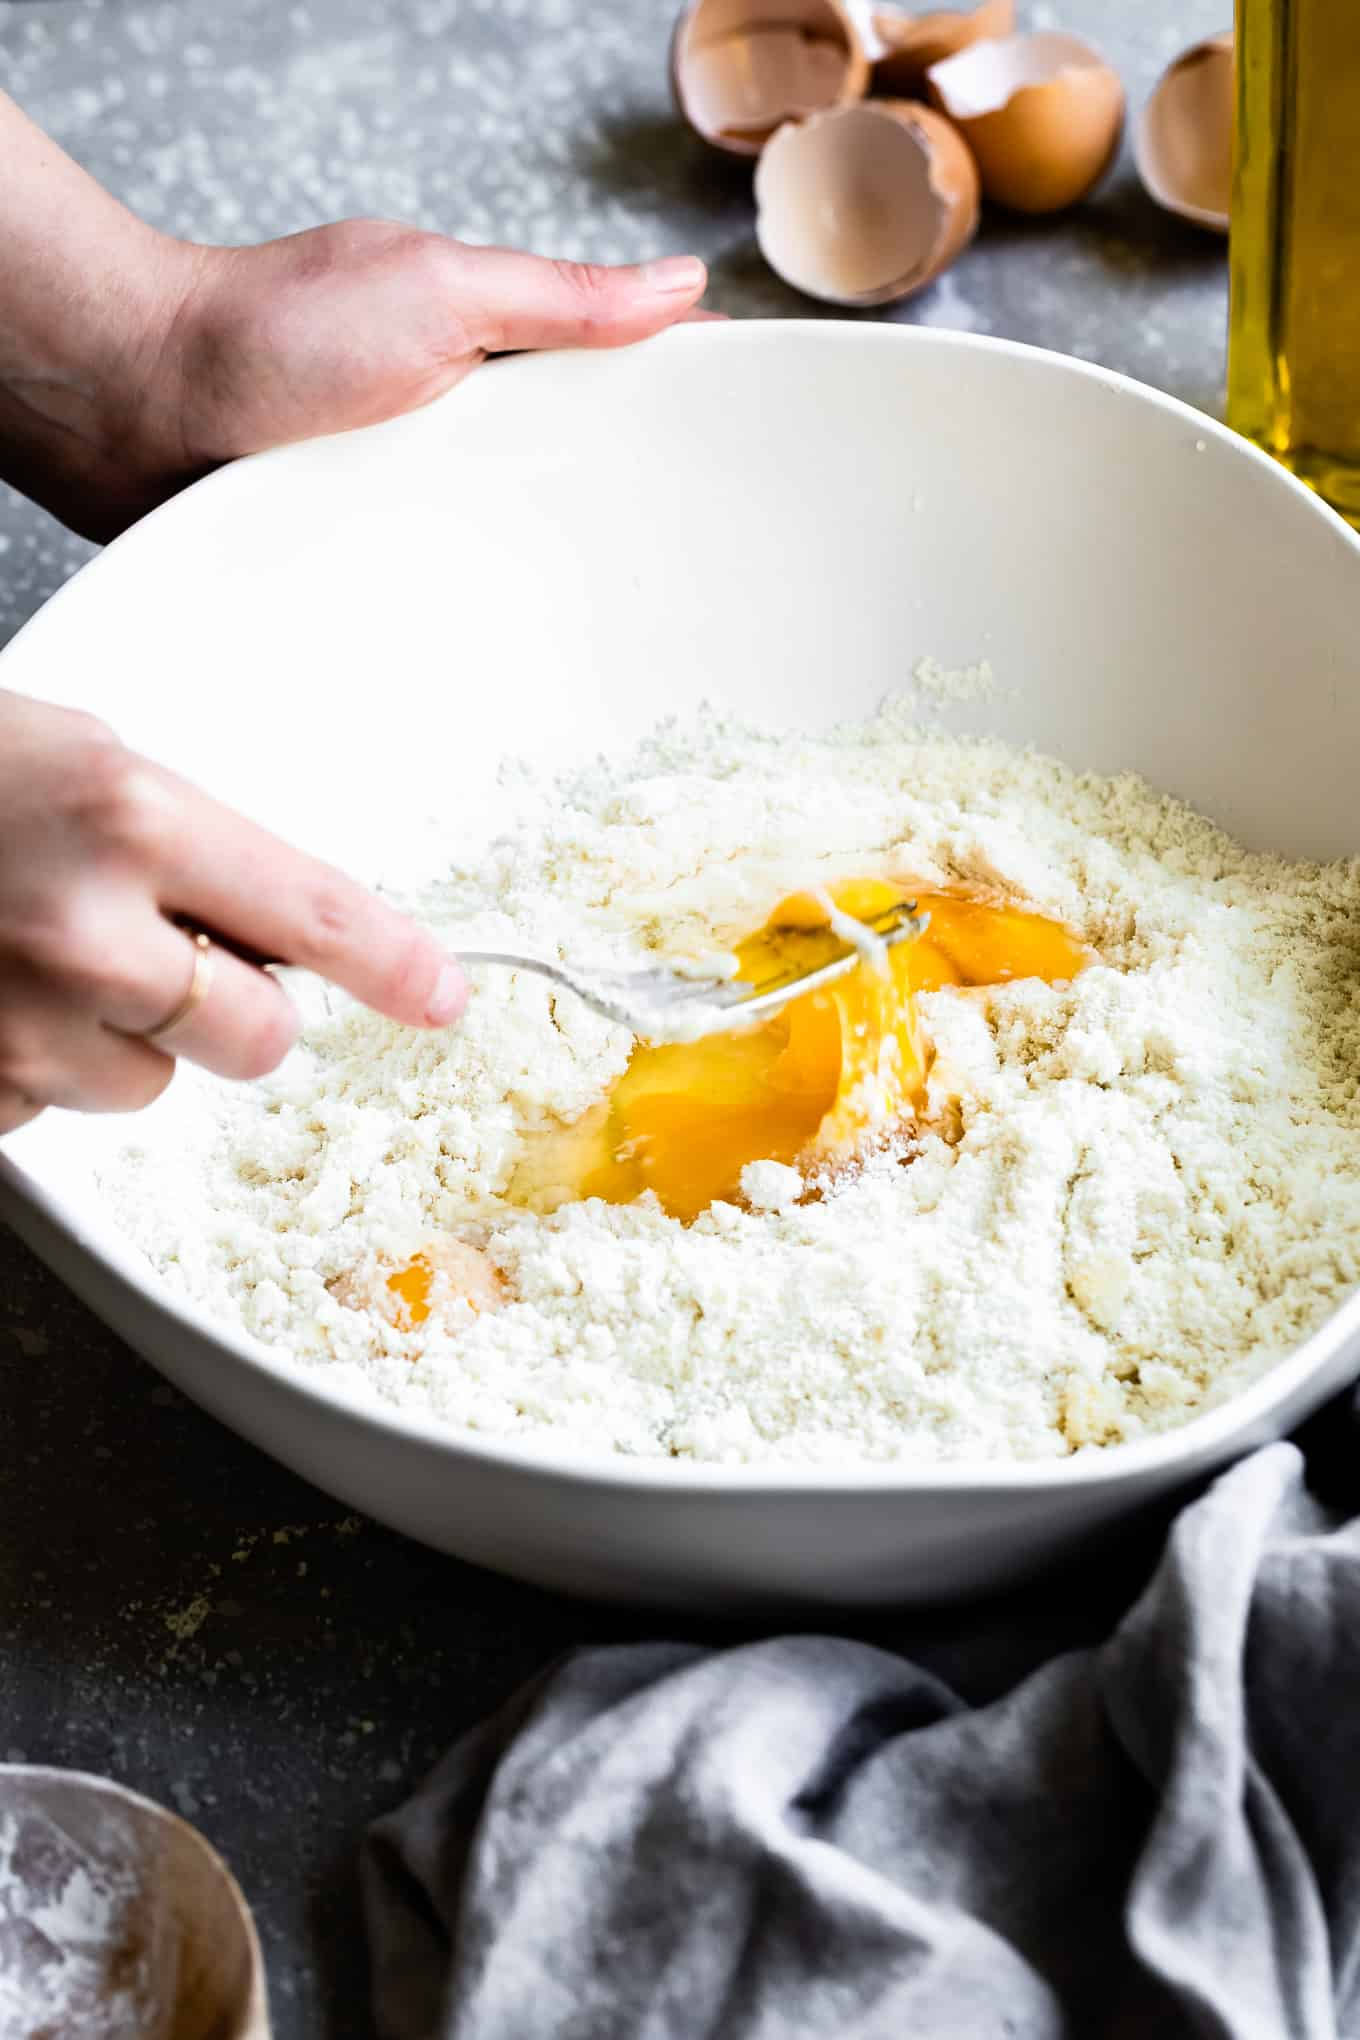 Can you make Pasta with Almond Flour